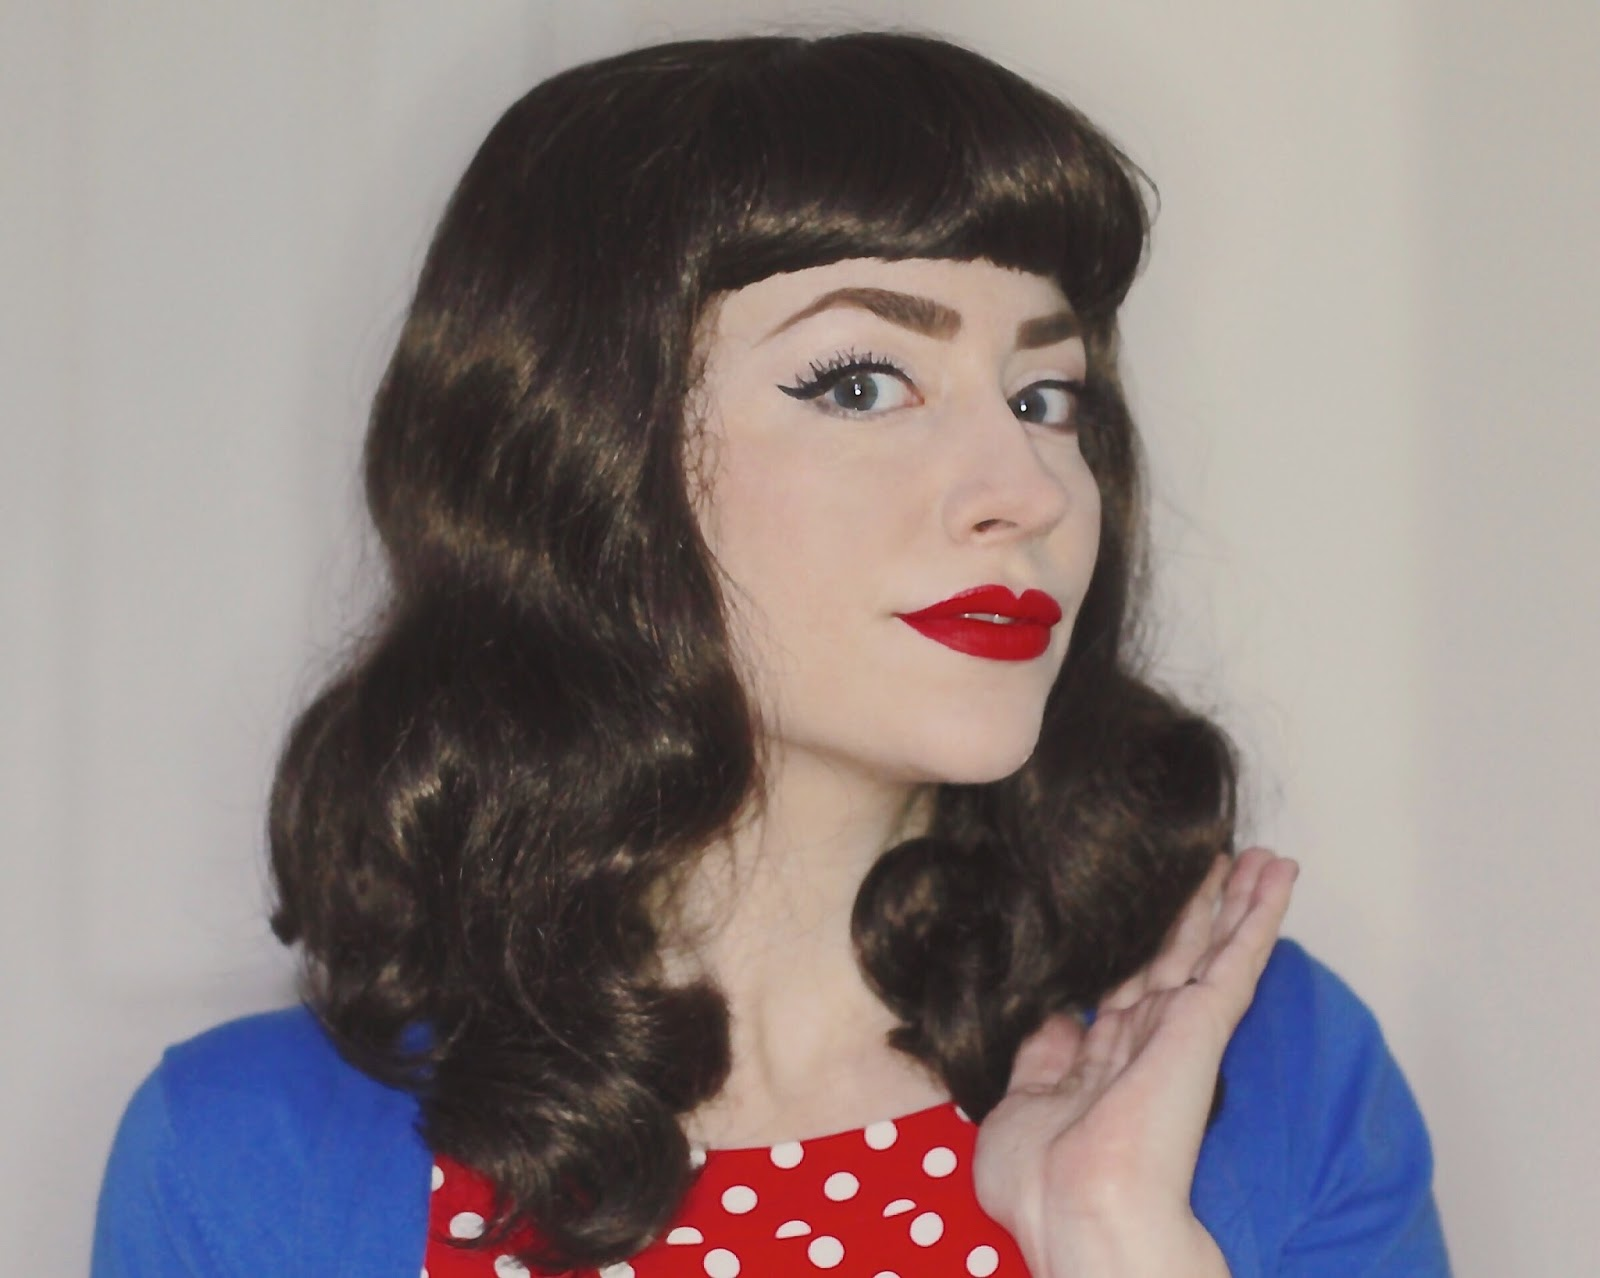 50 Style Hair: Easy 50s Hair: Part 1 €� Bettie Page Inspired